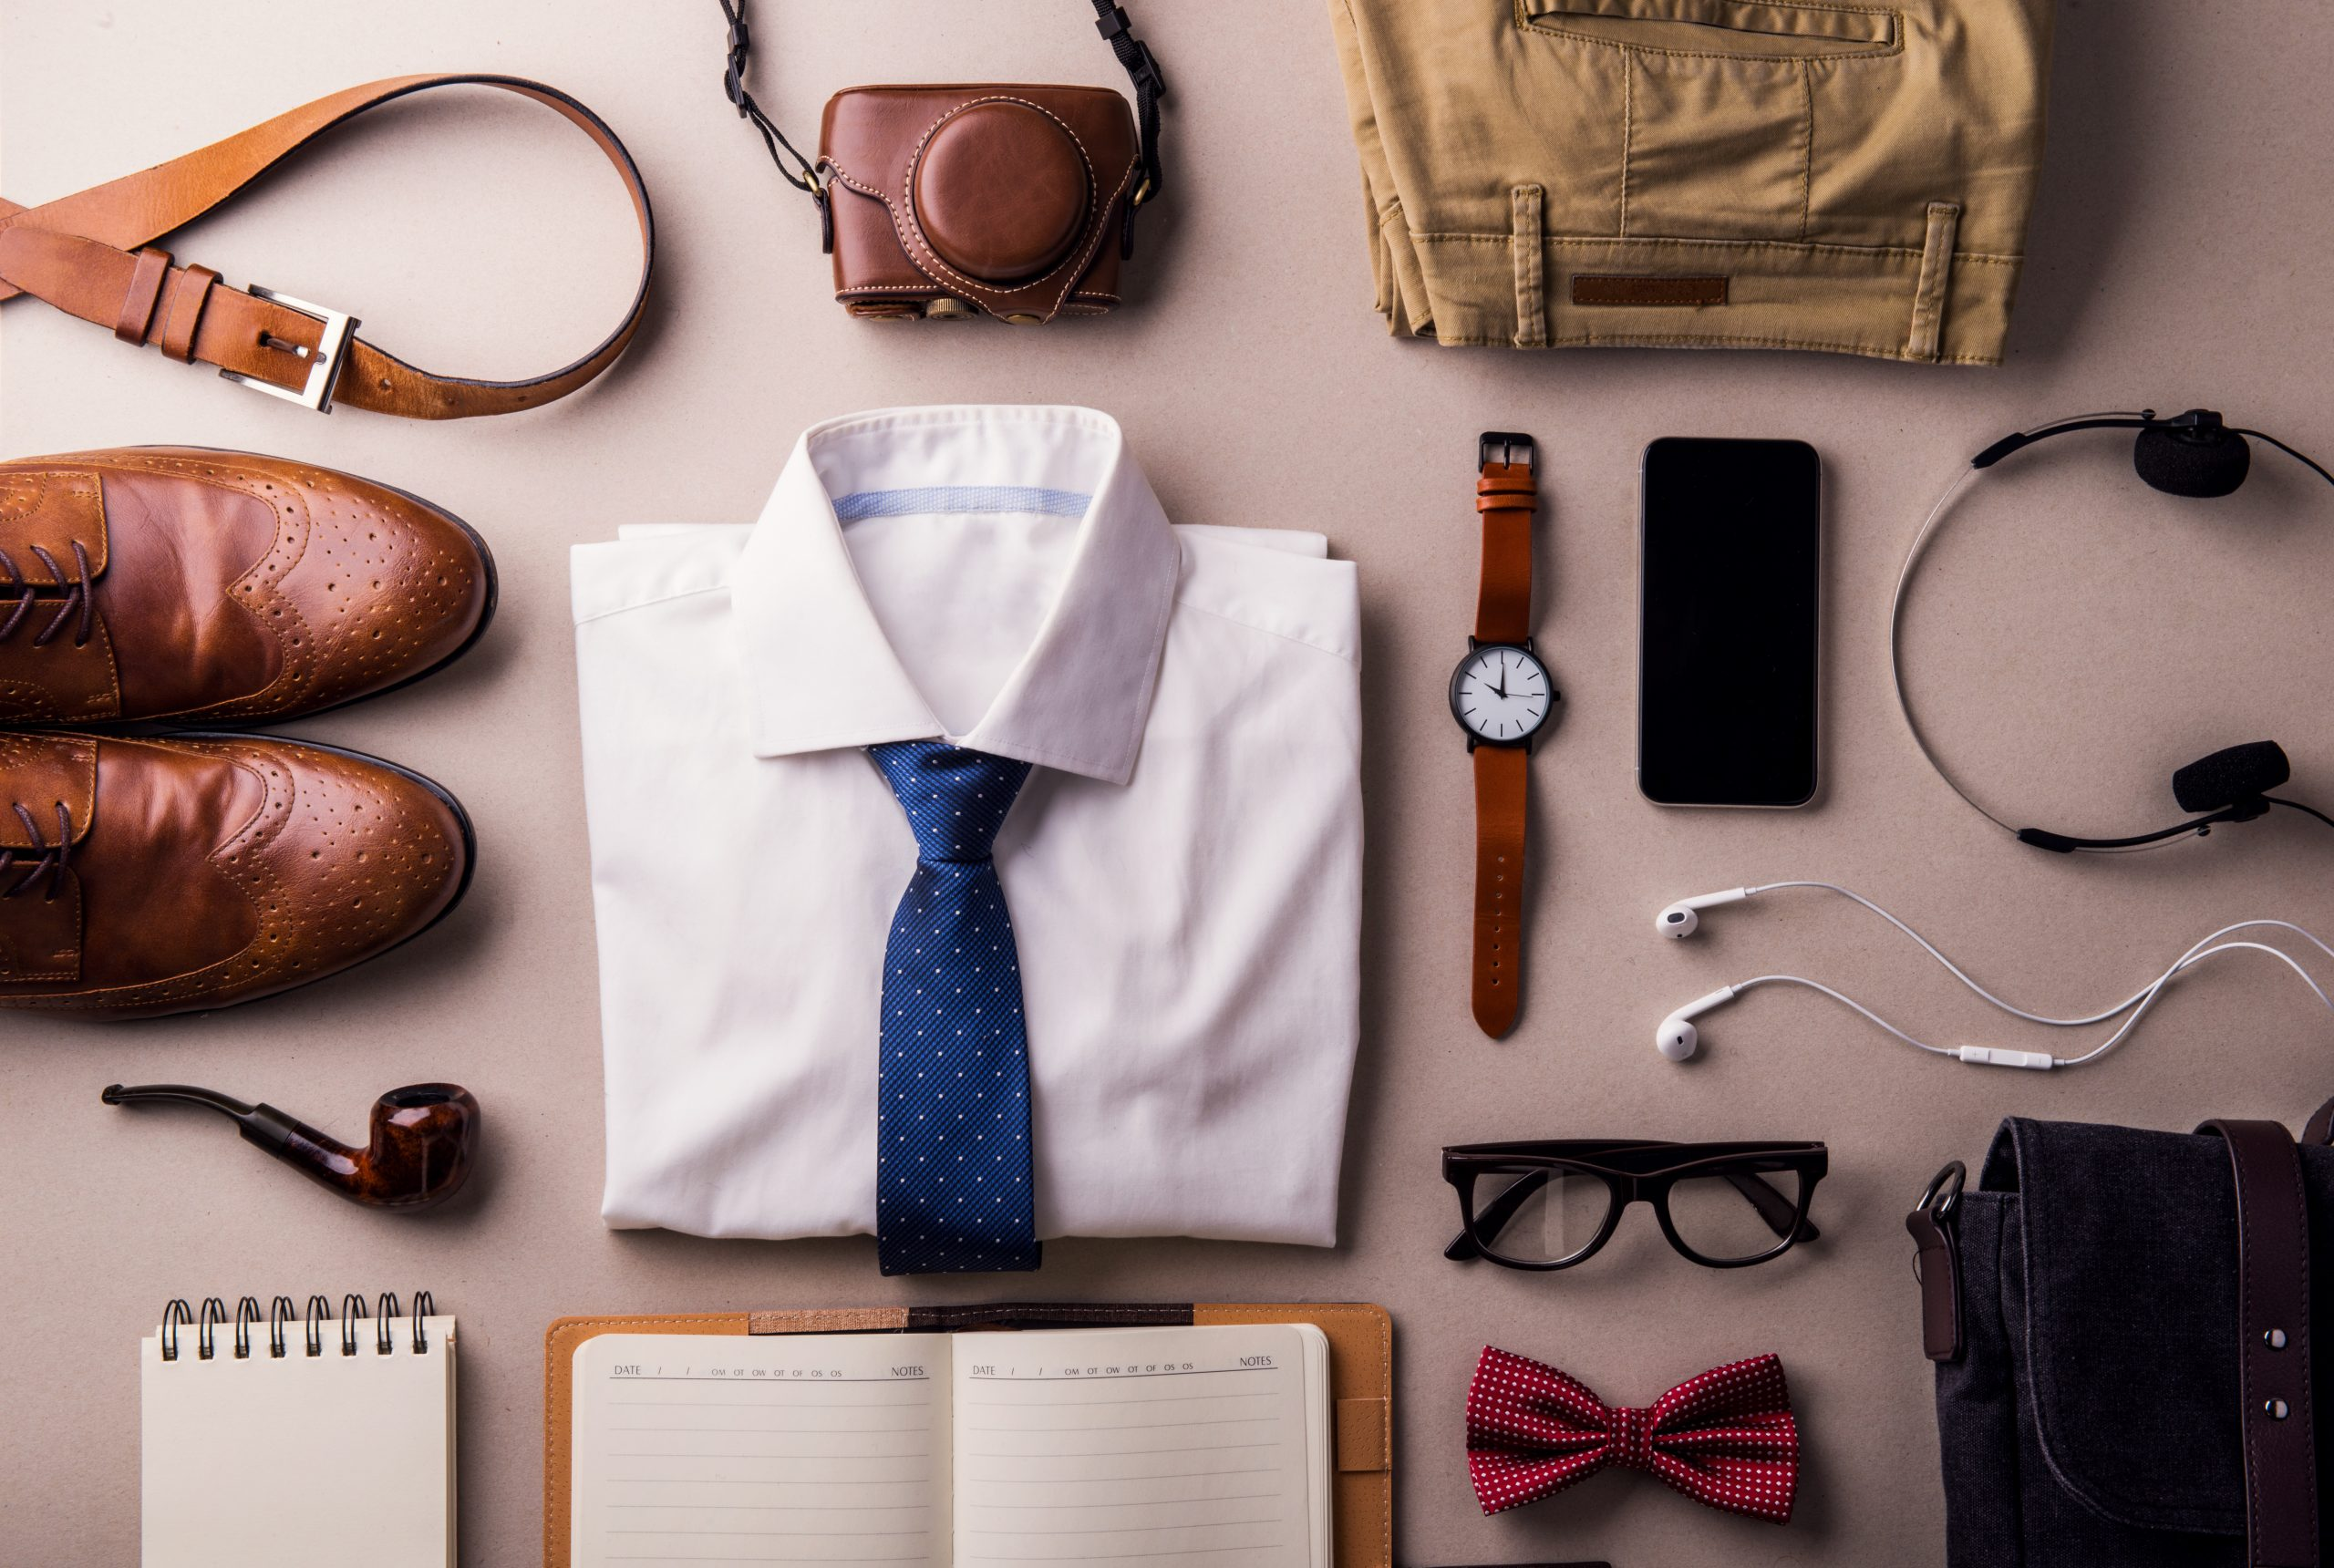 How to get the most out of Father's Day as a small business